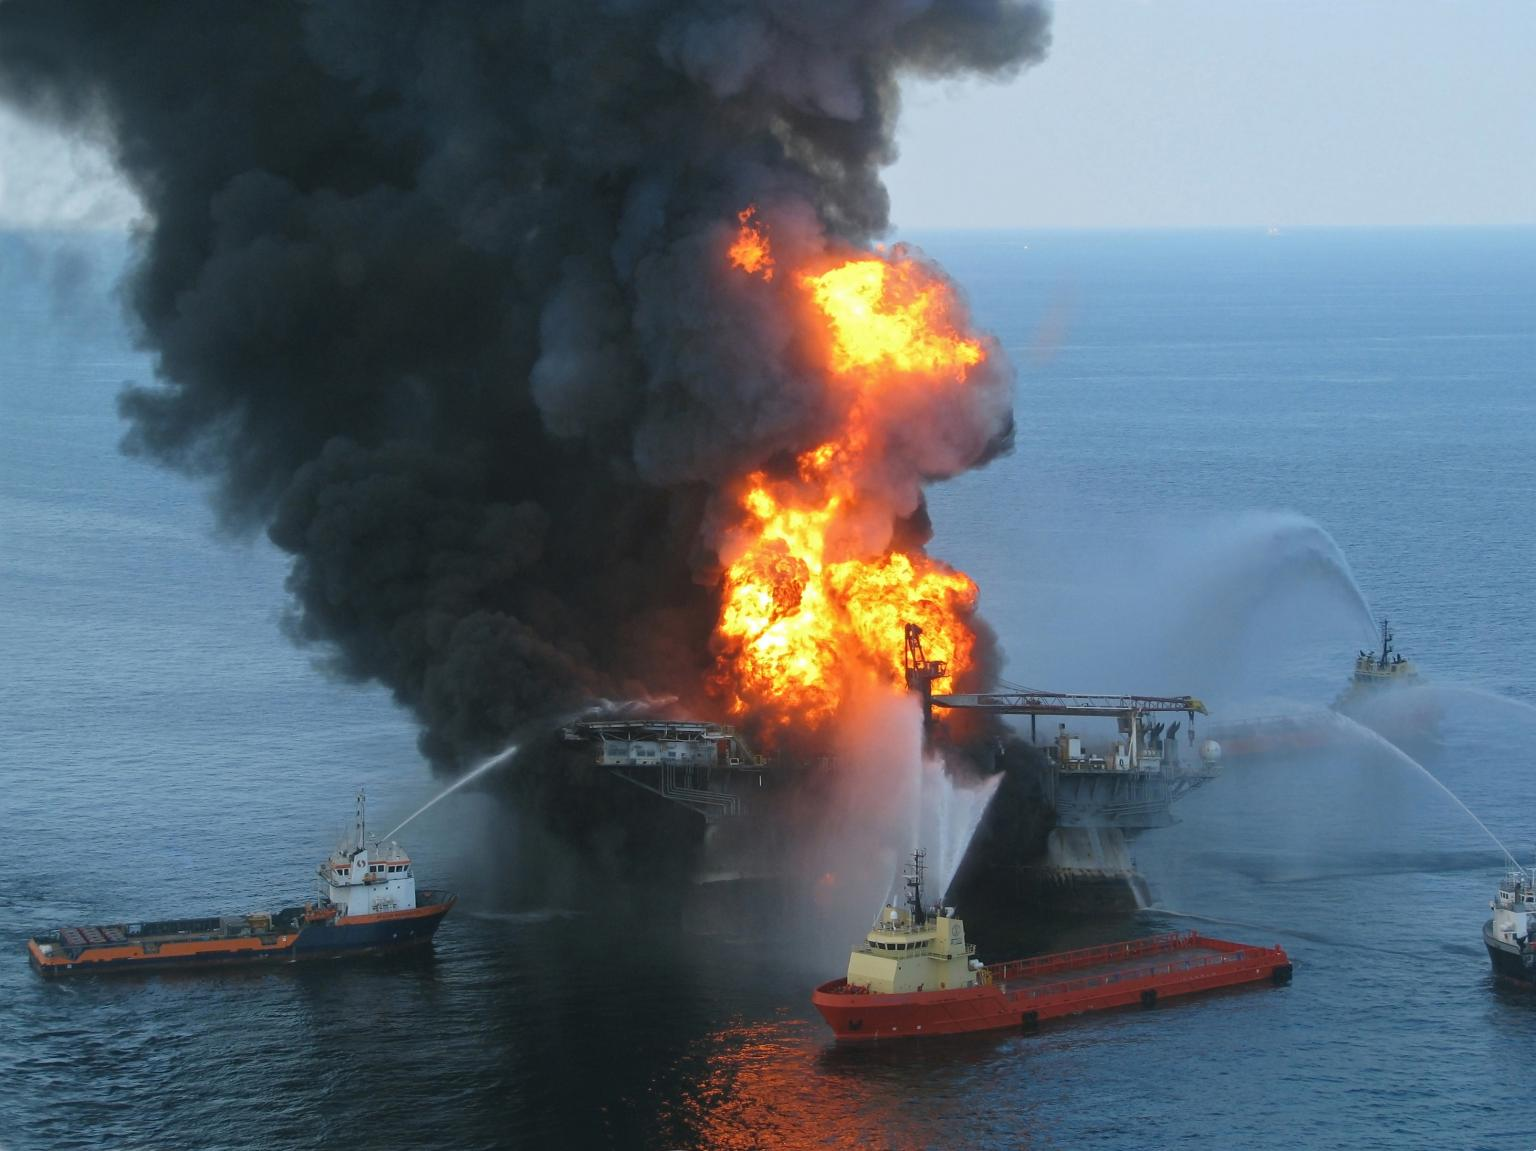 Platform support vessels fight the fire on what remains of the Deepwater Horizon rig